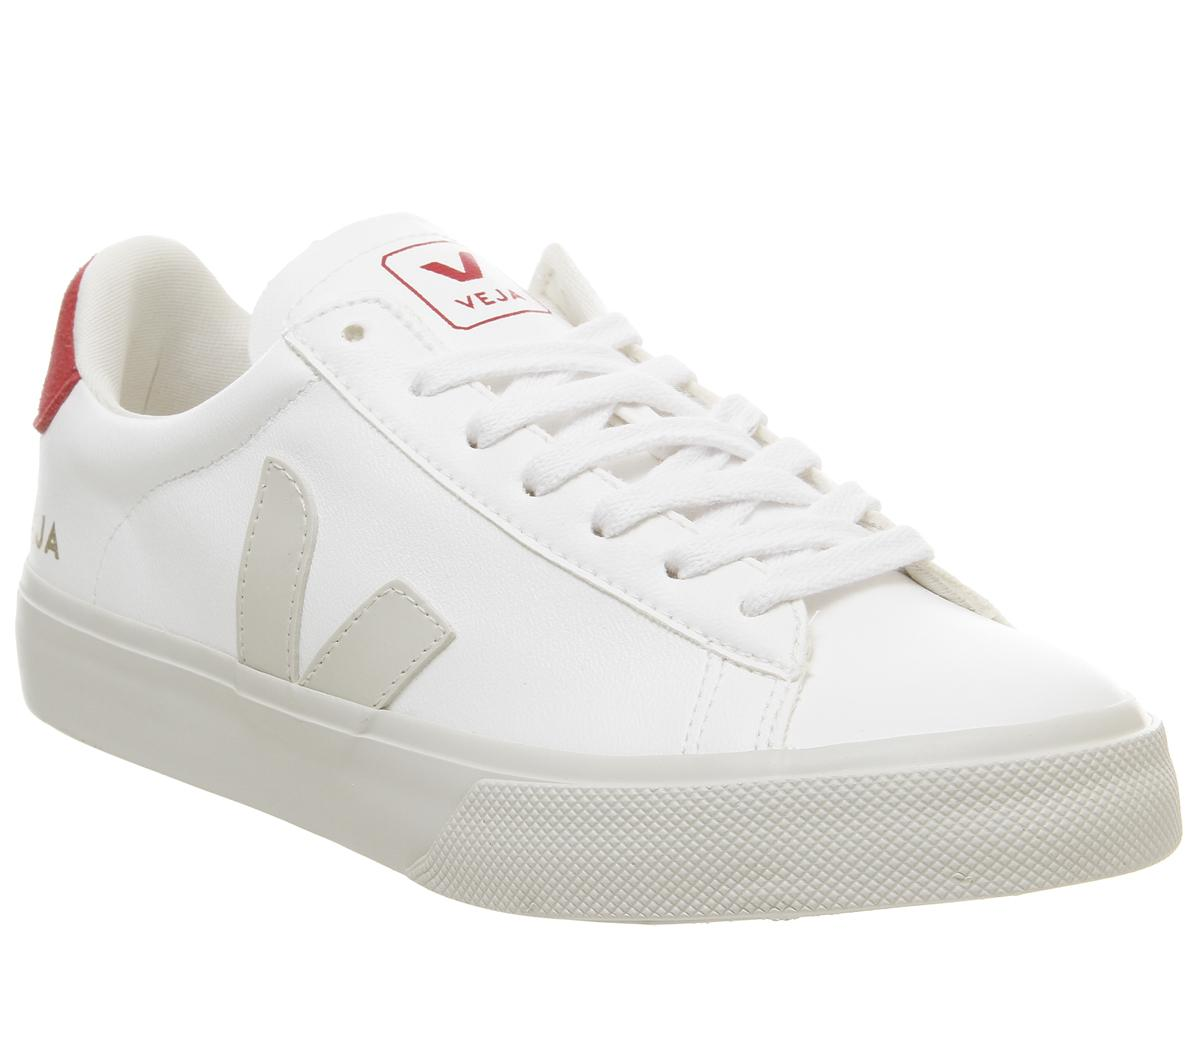 Veja Campo Trainers White Red F - Hers